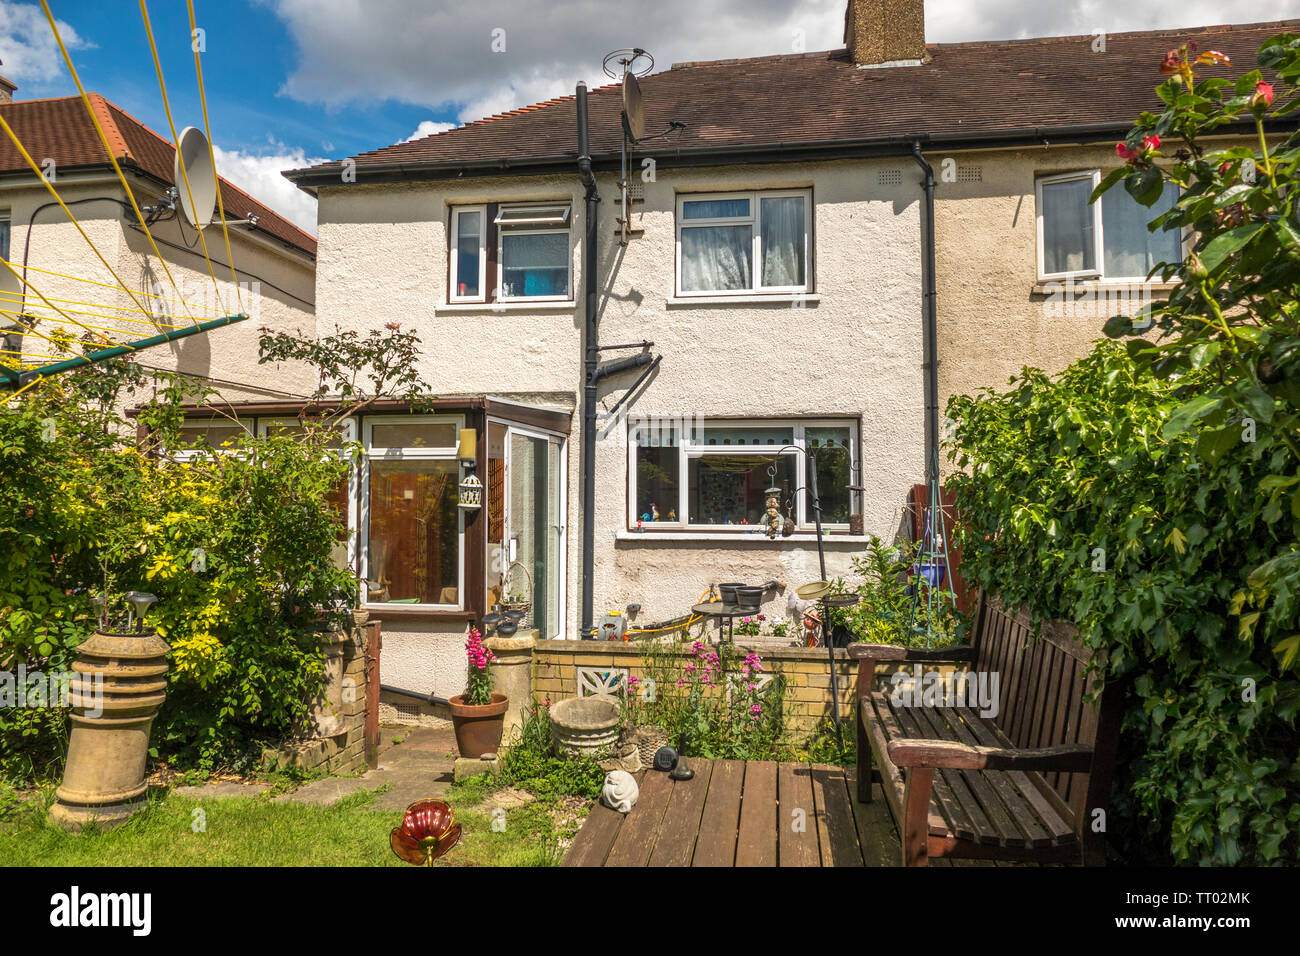 The rear of a modest end of terrace, 1920s, ex-local authority council house and garden, in the sunshine. South Ealing, London W5, England, UK. - Stock Image